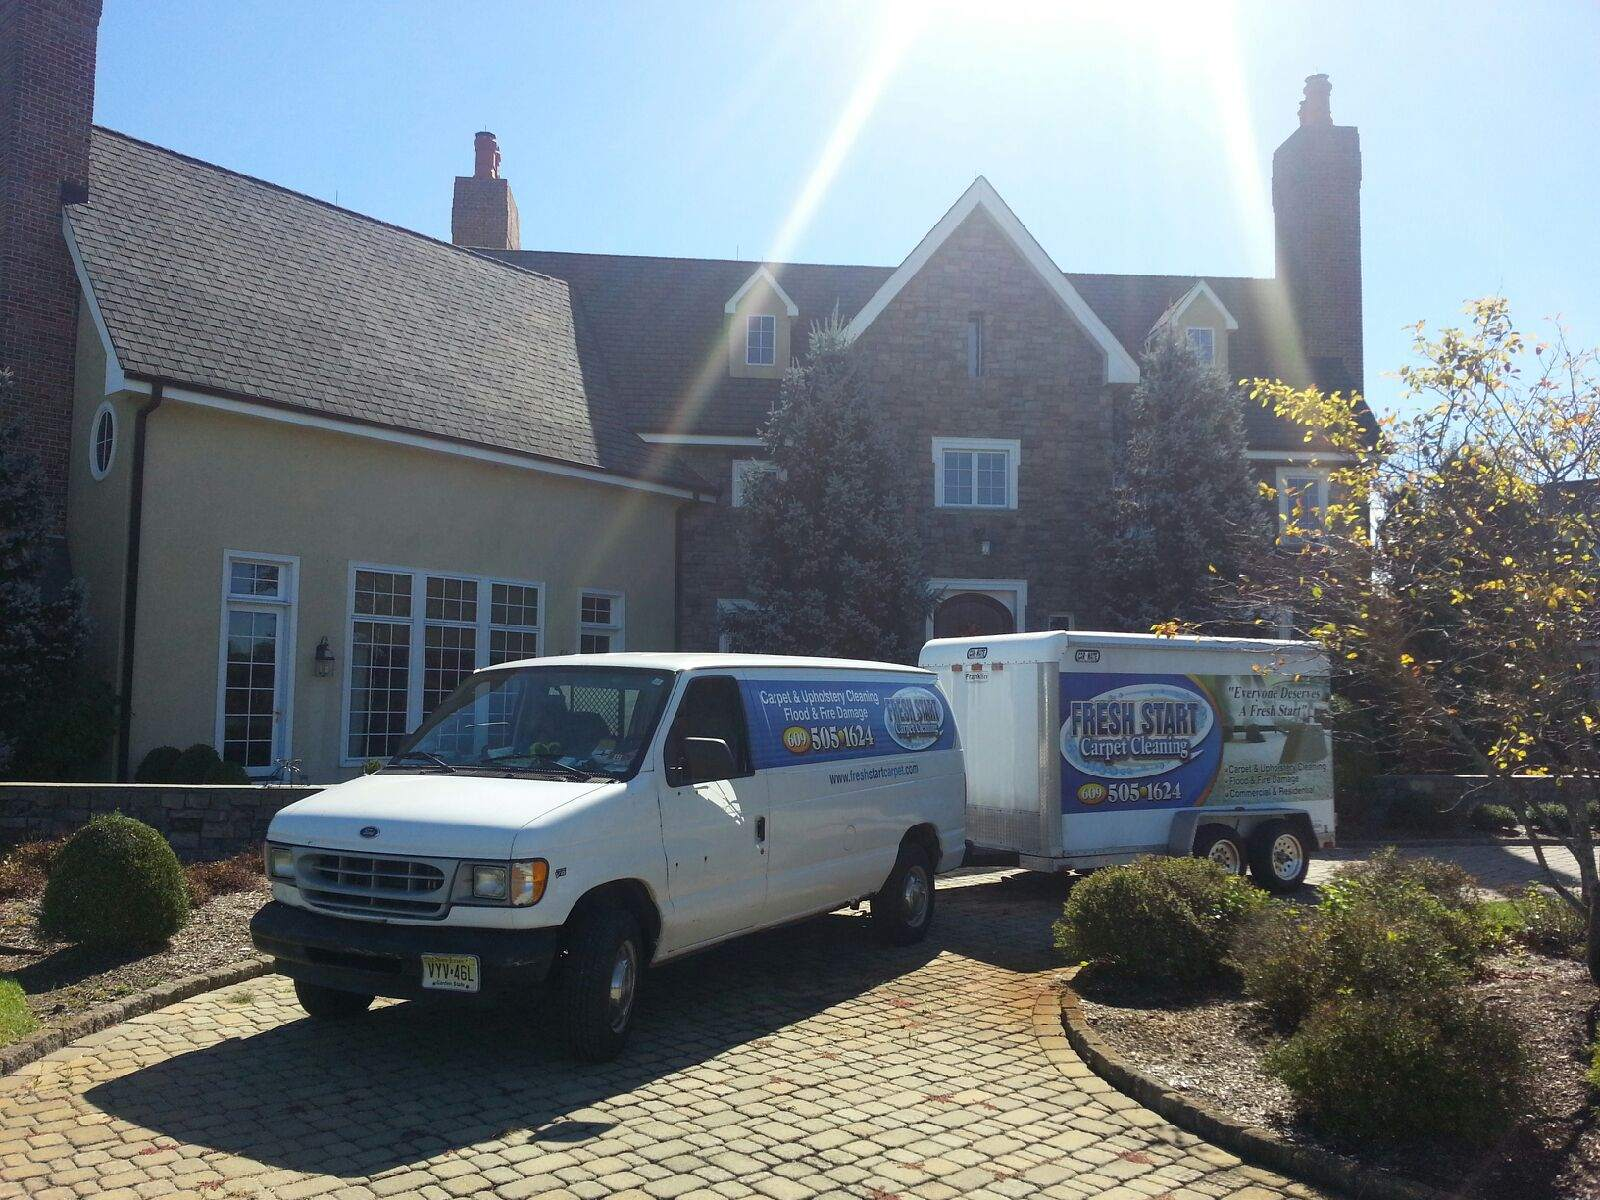 Fresh+Start+Carpet+Cleaning+Allentown+NJ.